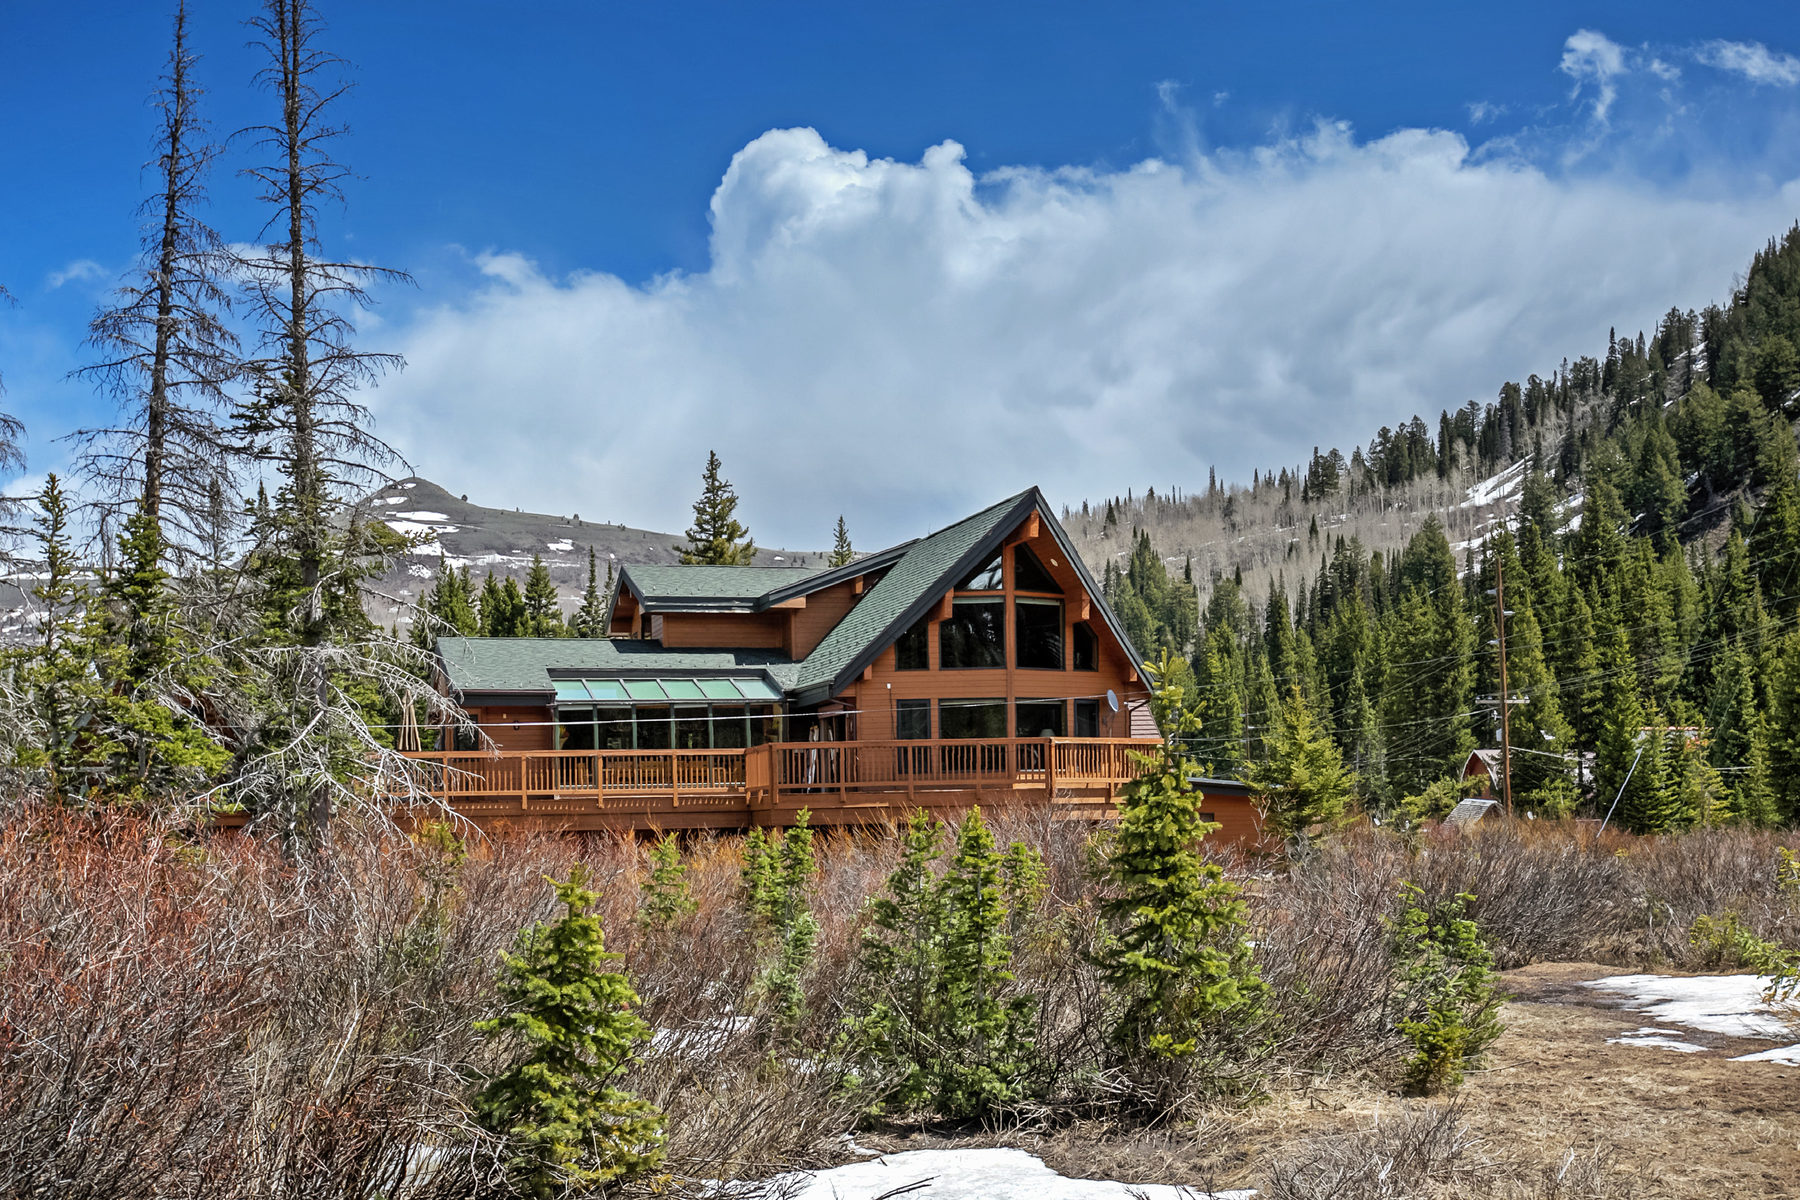 Single Family Home for Sale at Spectacular Year Round Luxury Ski Home 7958 S Big Cottonwood Canyon Rd Brighton, Utah 84121 United States